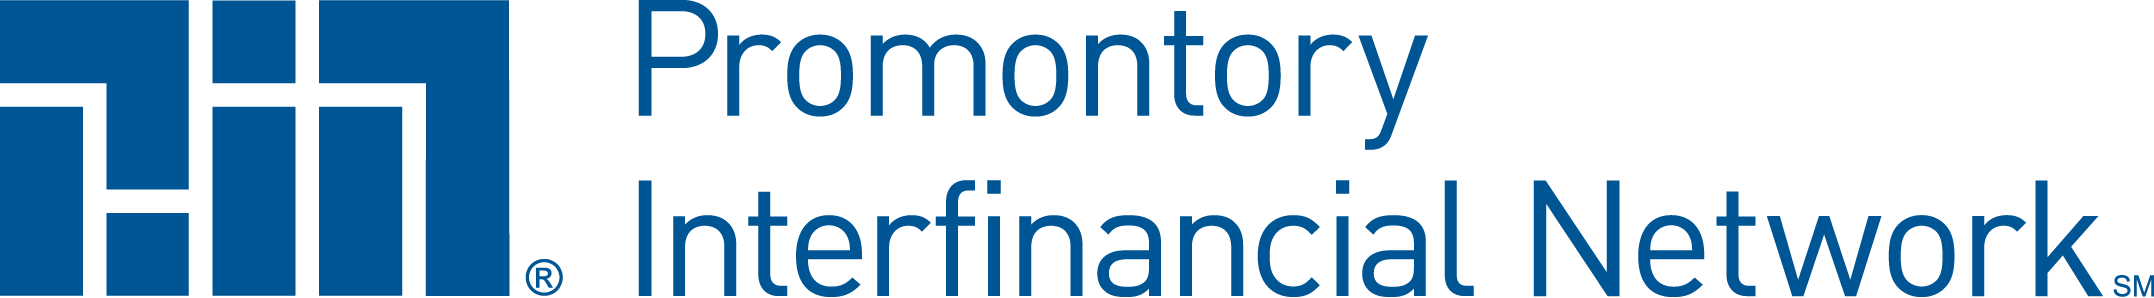 https://www.speakcdn.com/assets/1674/promontoryinterfinancialnetwork-updated_logo_6-24-14.png